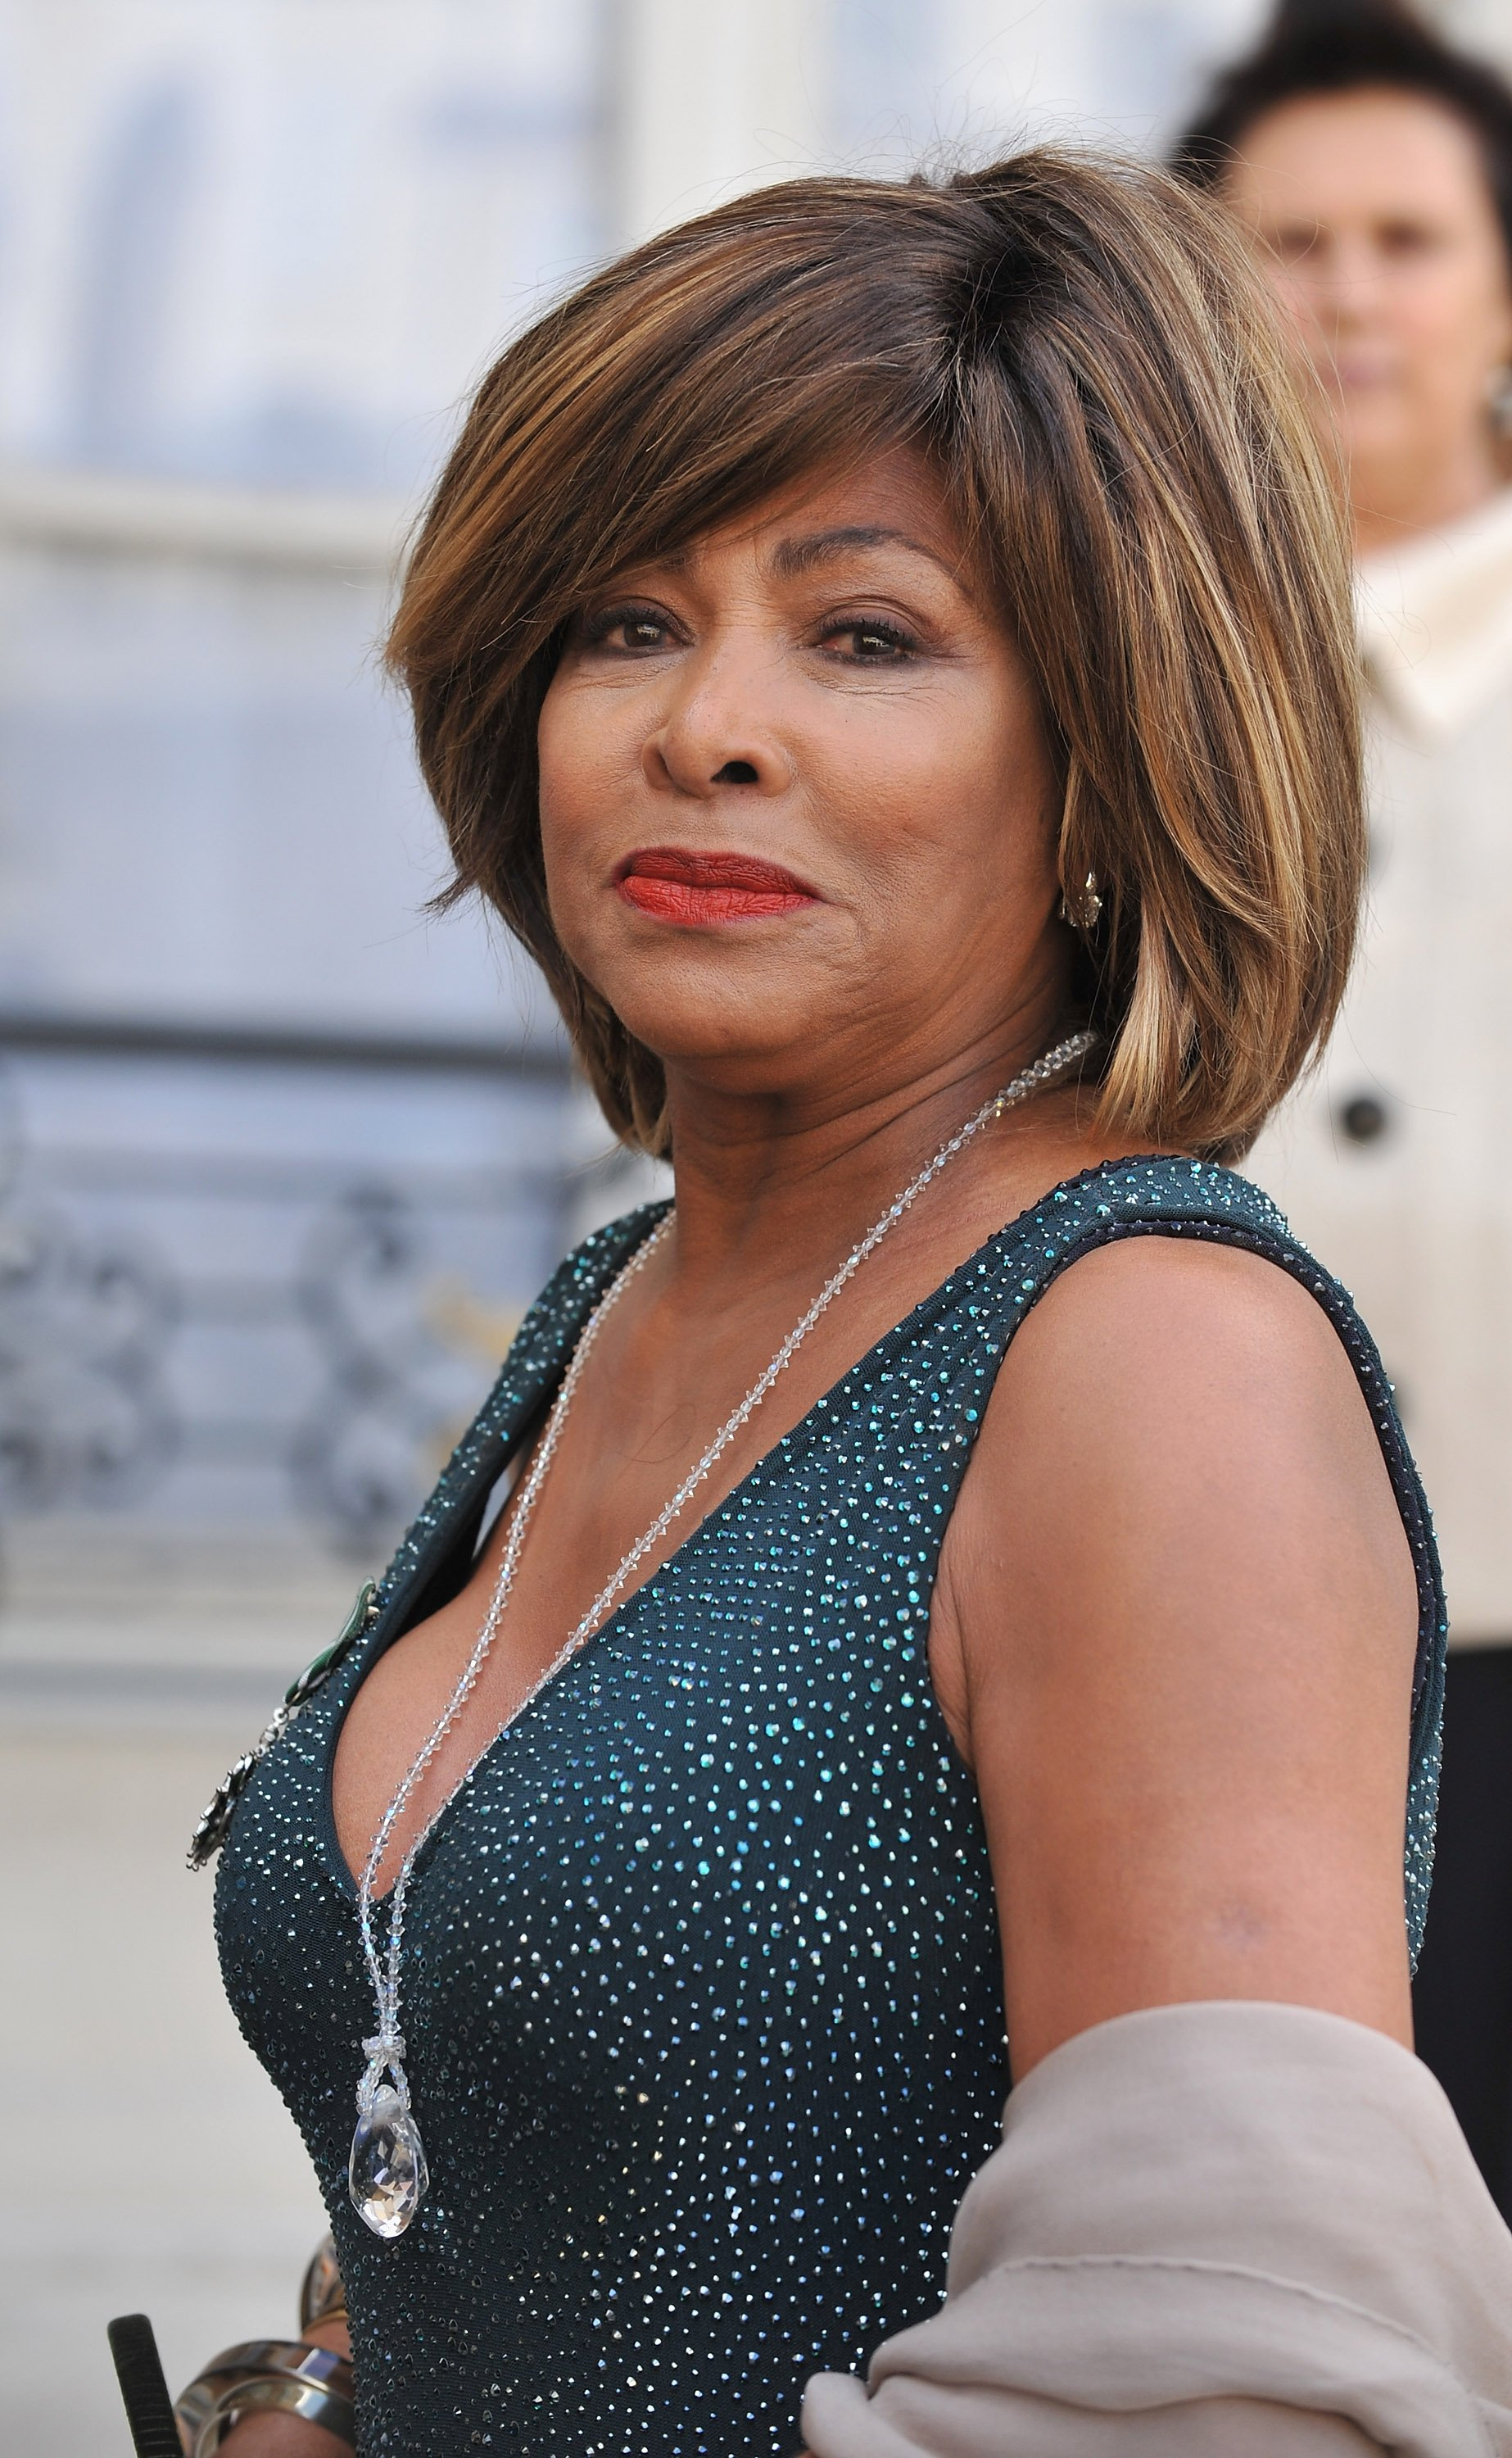 Tina Turner attending a ceremony at the president's official residence for honorees of France's most prestigious Legion D'Honneur award on July 3, 2008, in Paris, France. | Source: Getty Images.